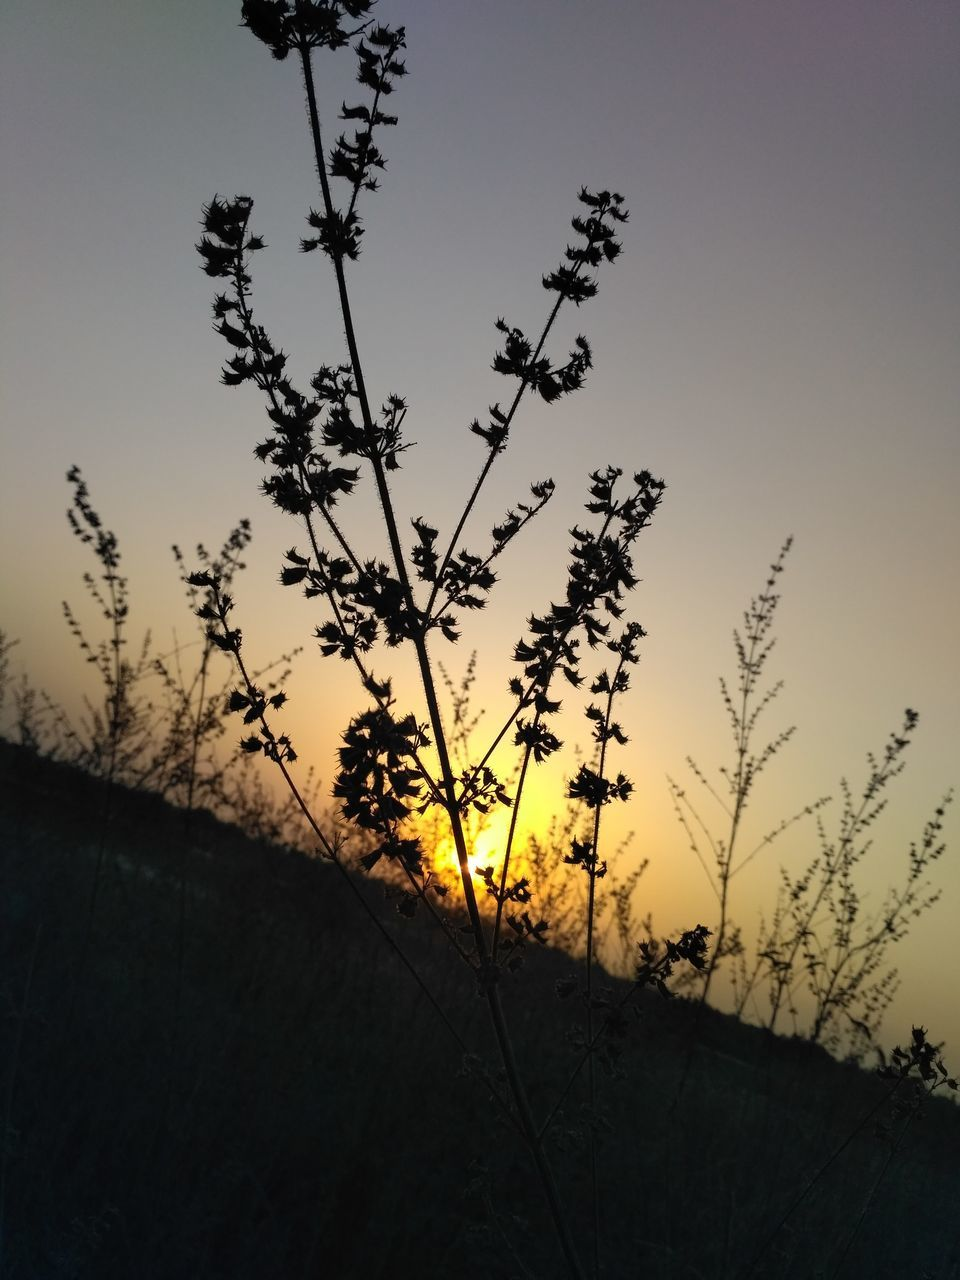 growth, nature, sunset, silhouette, plant, beauty in nature, tree, no people, sky, tranquility, outdoors, landscape, clear sky, day